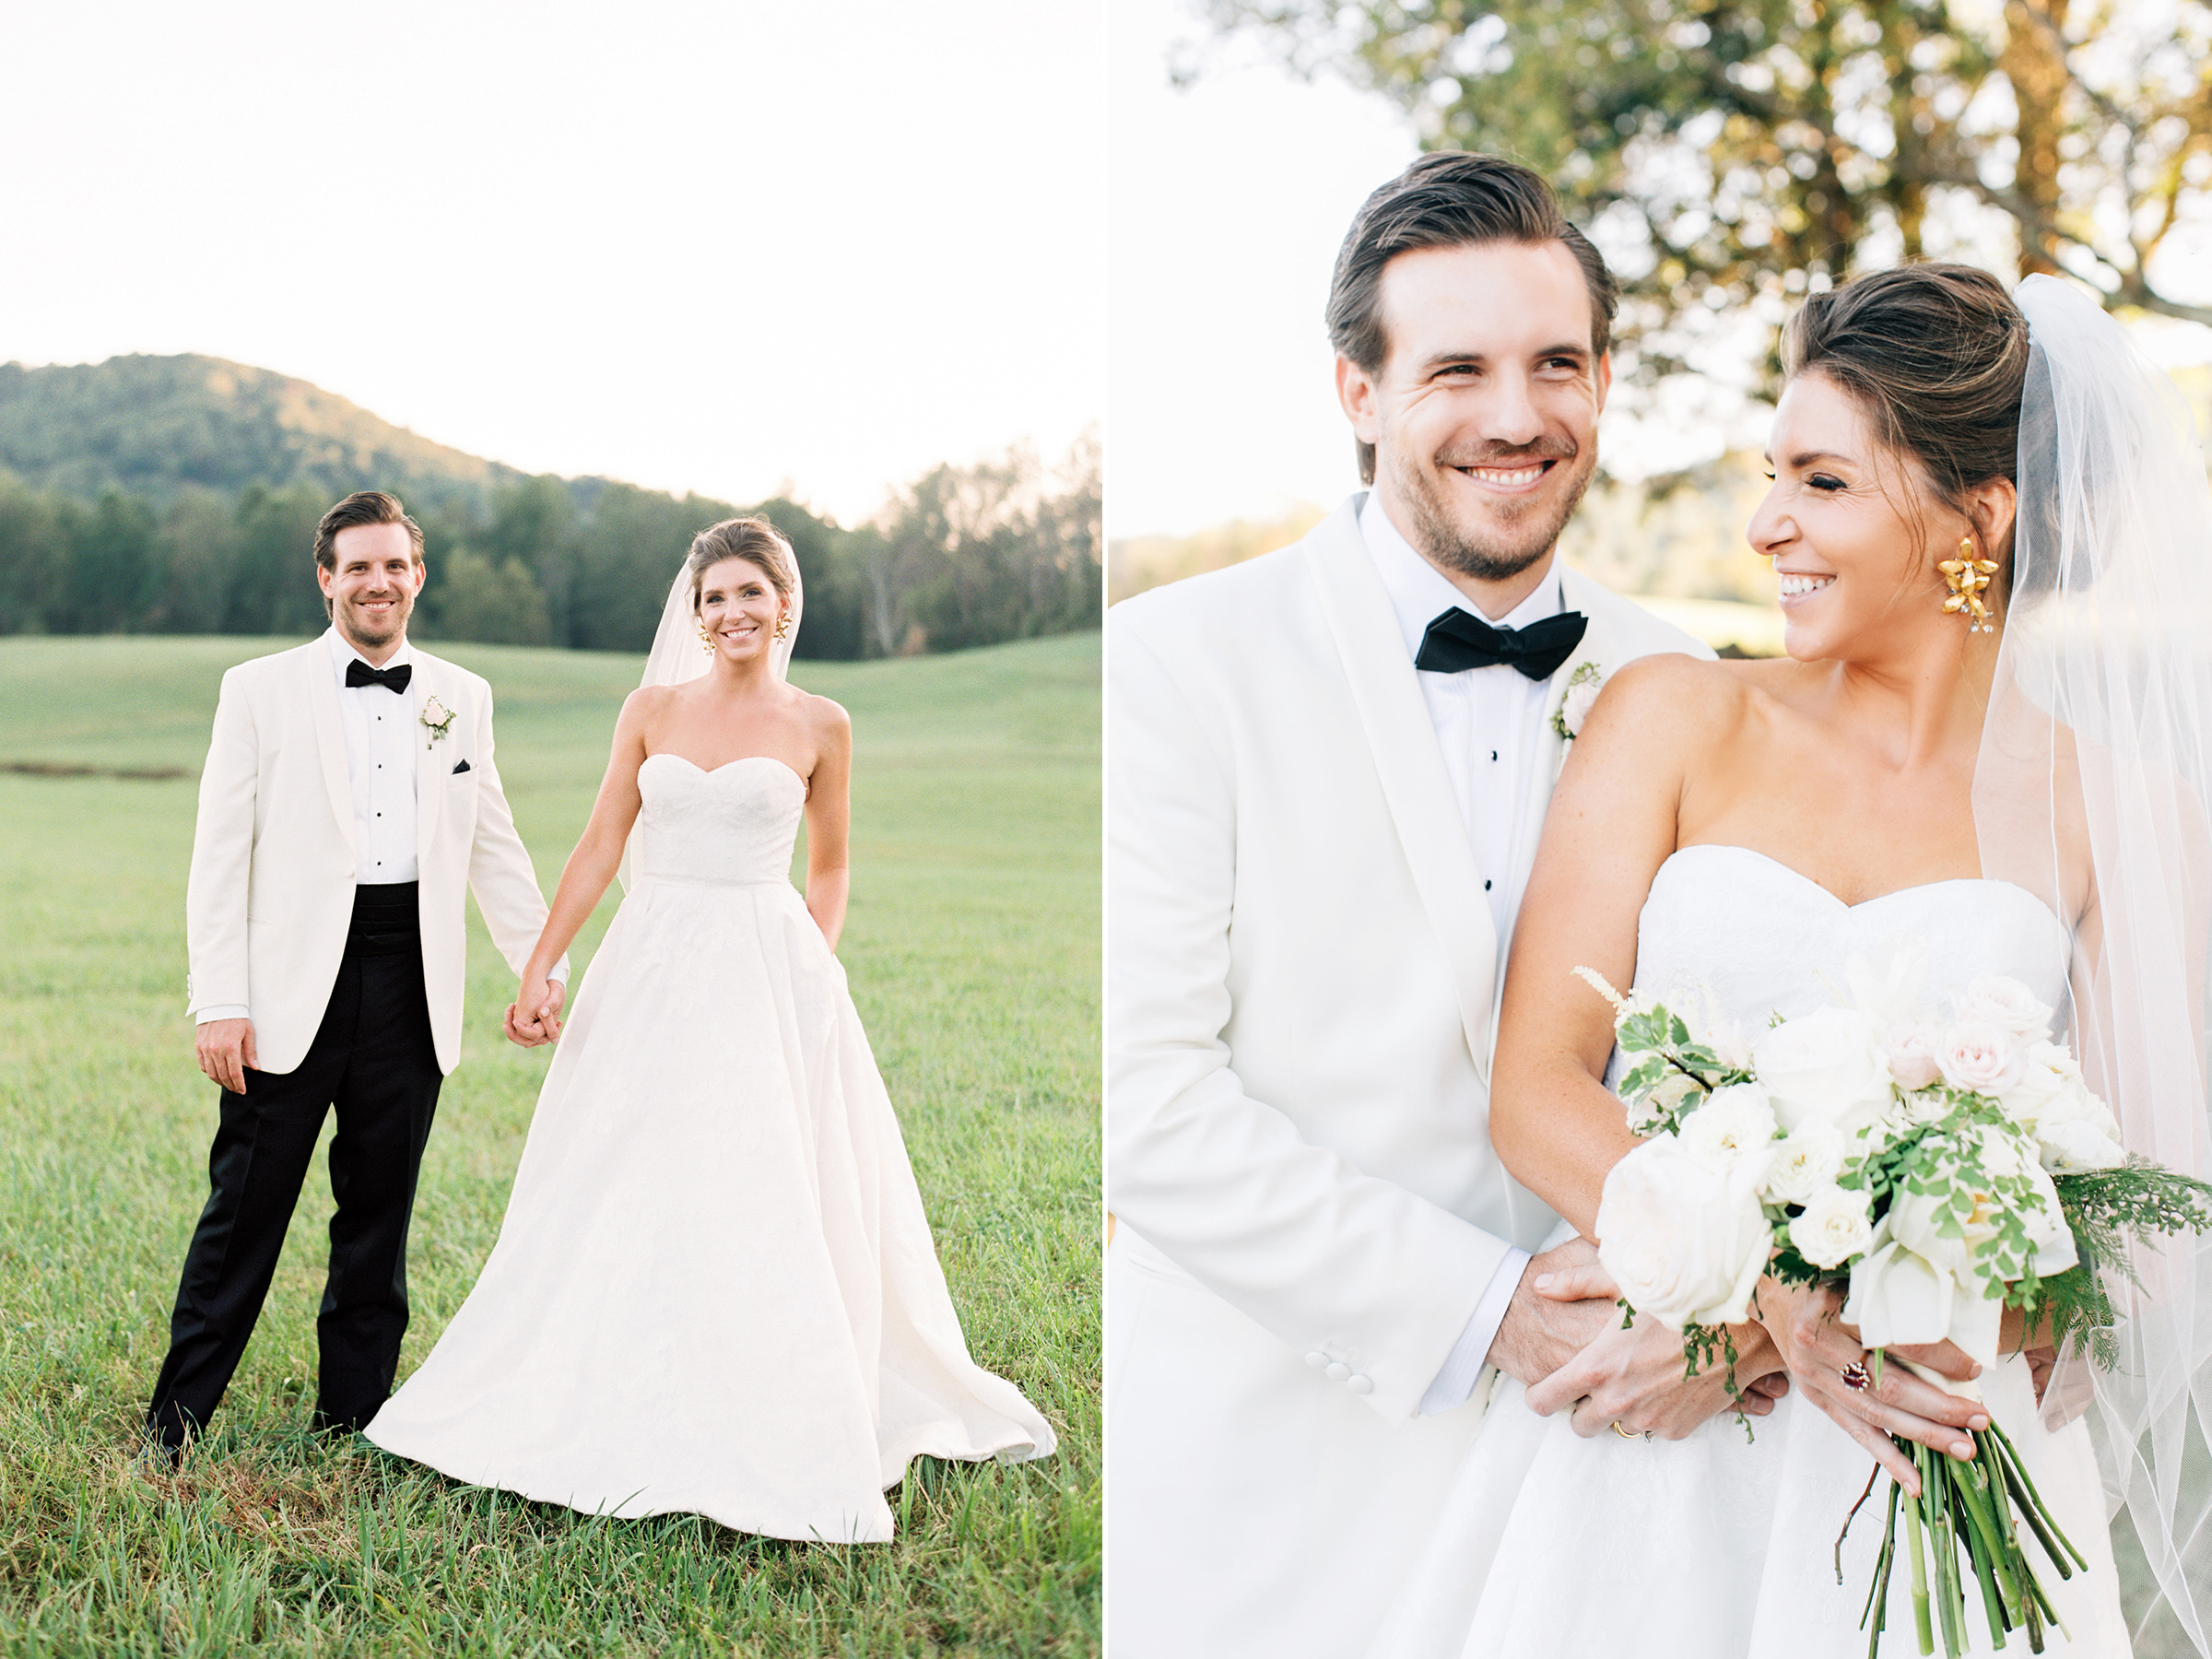 KatieStoopsPhotography-charlottesville wedding-farm wedding27.jpg